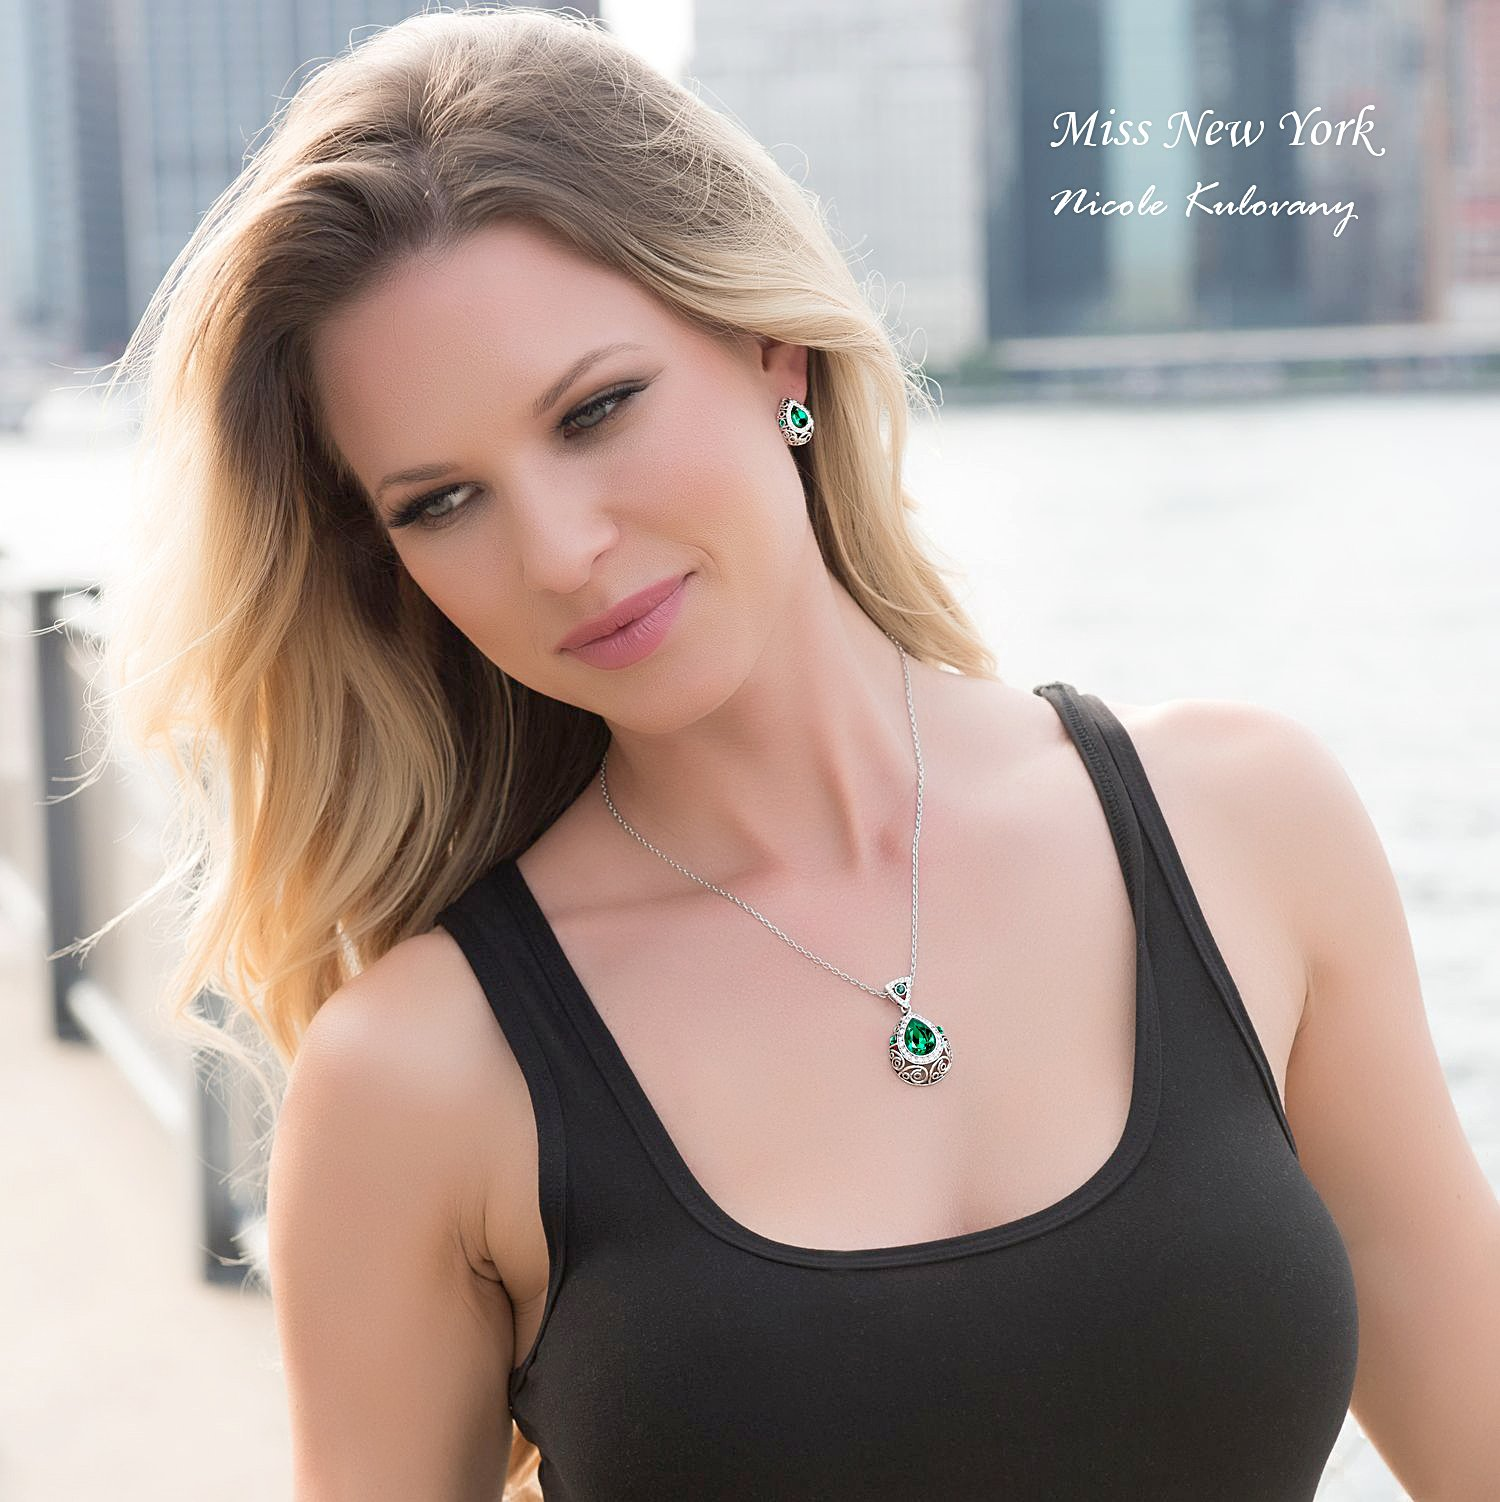 Leafael [Presented by Miss New York] Silver-tone Teardrop Filigree Vintage Style Emerald Green Pendant Necklace Made with Swarovski Crystals Earrings Set, 18'' + 2'', Nickel/Lead/Allergy Box by Leafael (Image #4)